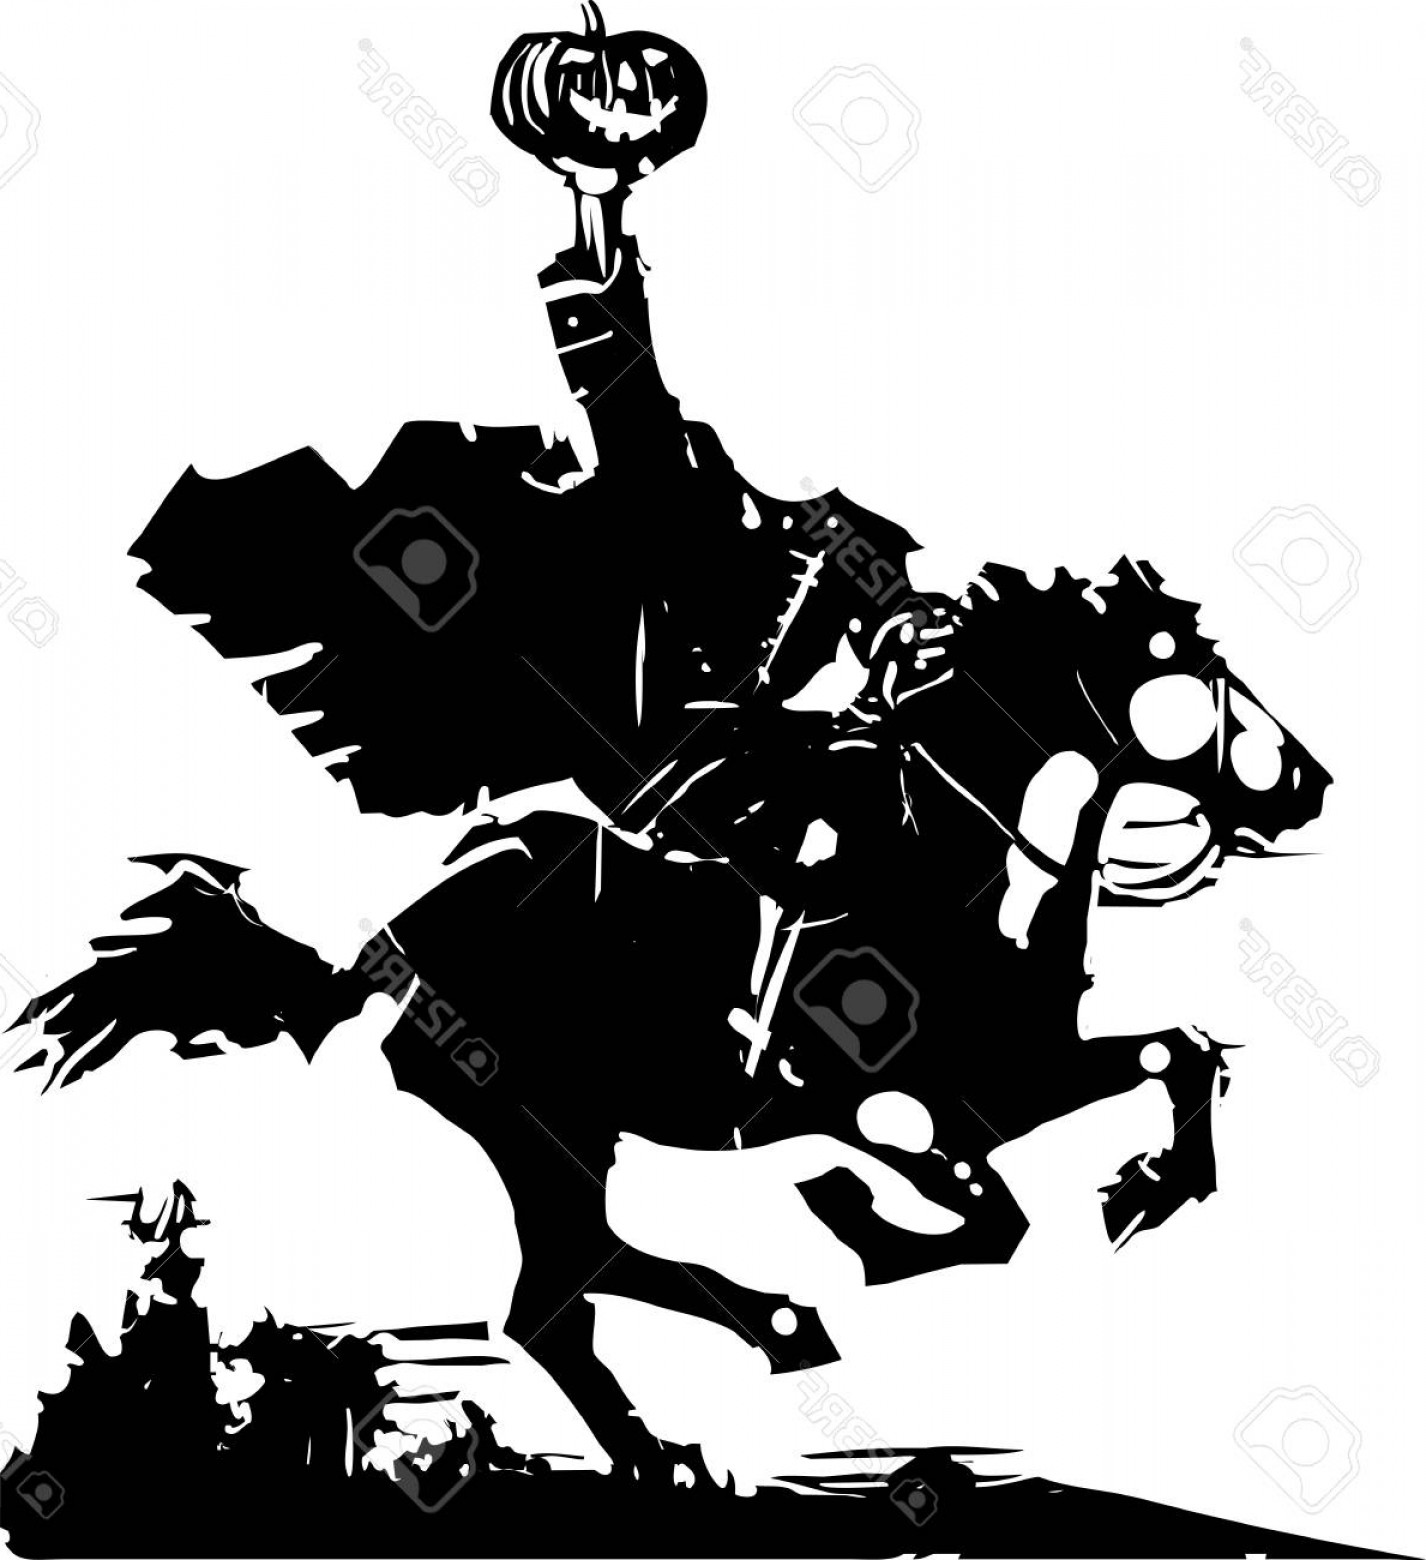 Headless Scary Halloween Skeletons Vectors: Photostock Vector Woodcut Style Expressionist Image Of The Headless Horseman Ghost Vector Illustration